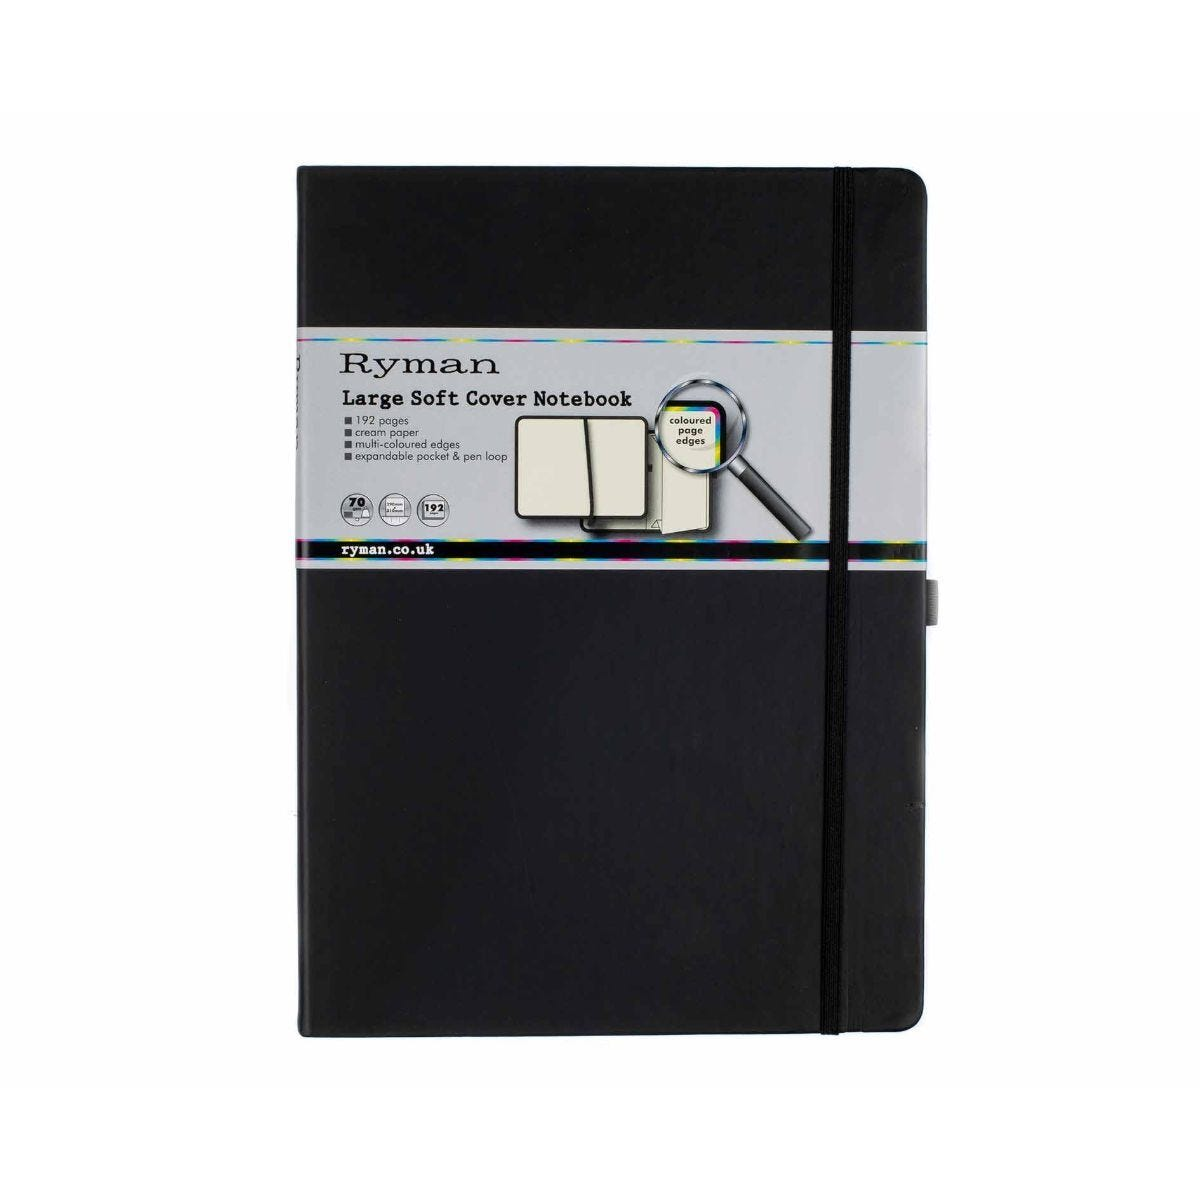 Ryman Soft Cover Notebook Large Ruled 192 Pages Black